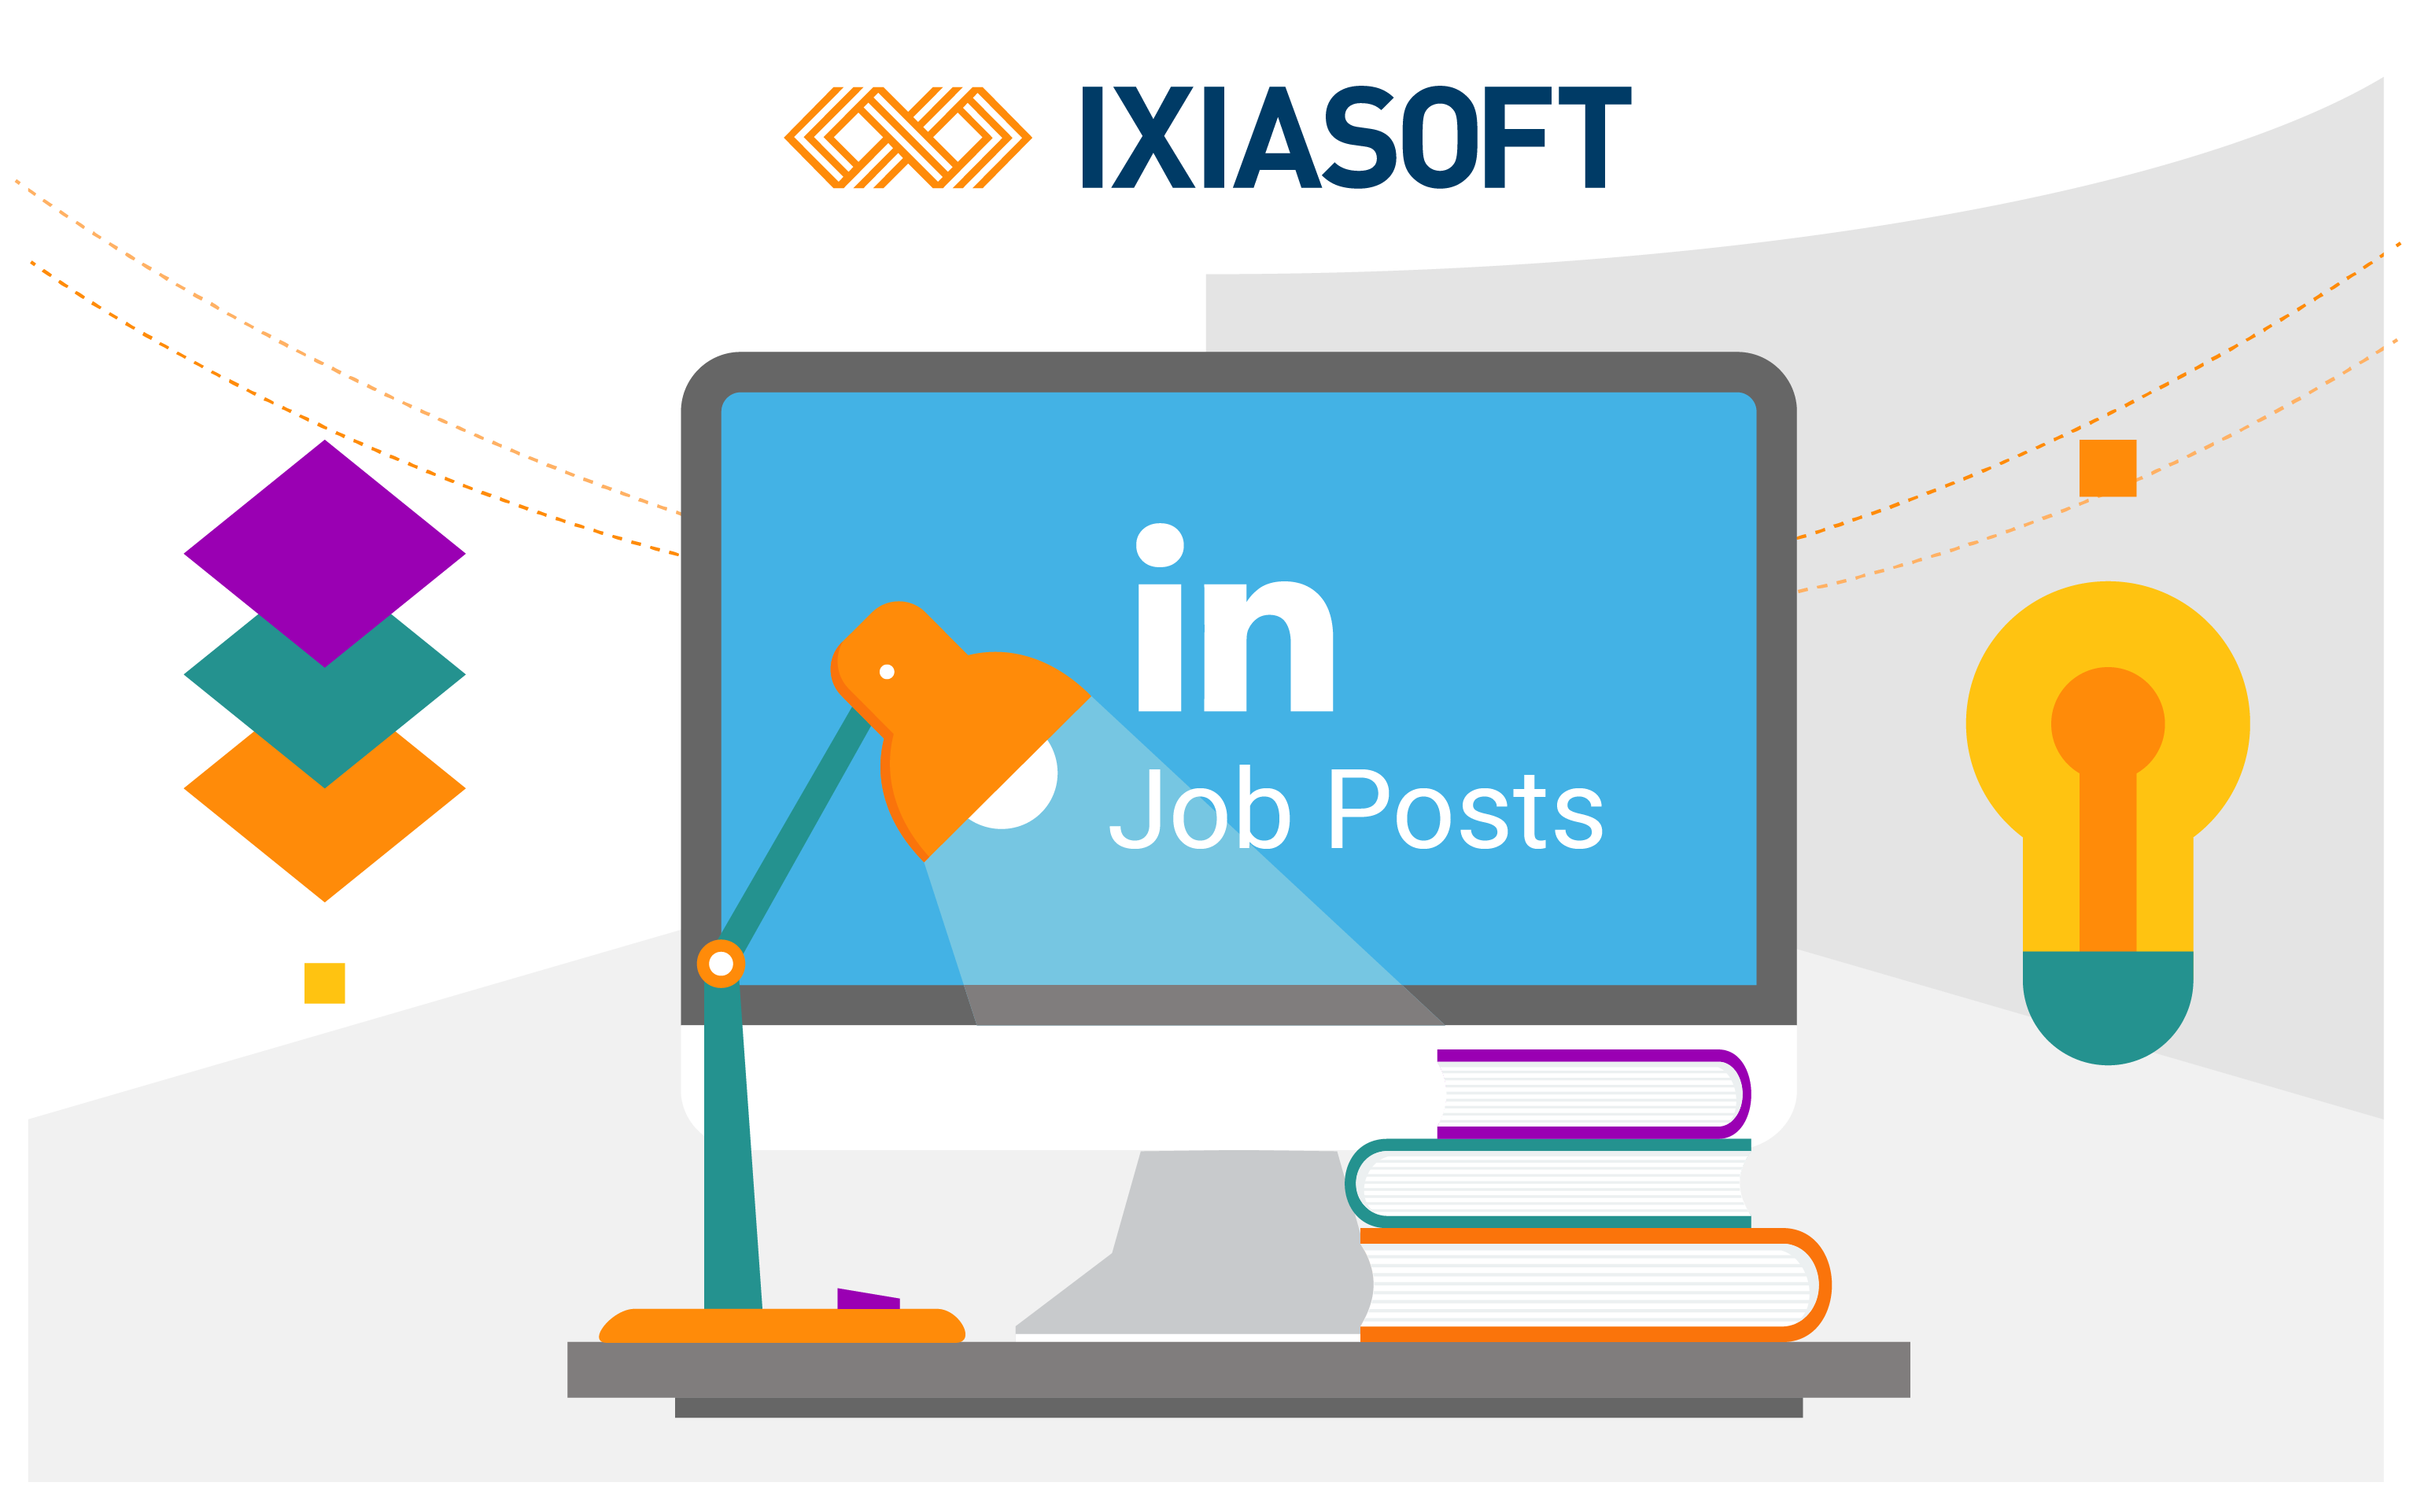 Graphic of monitor, lamp, books, and LinkedIn job posts for IXIASOFT.